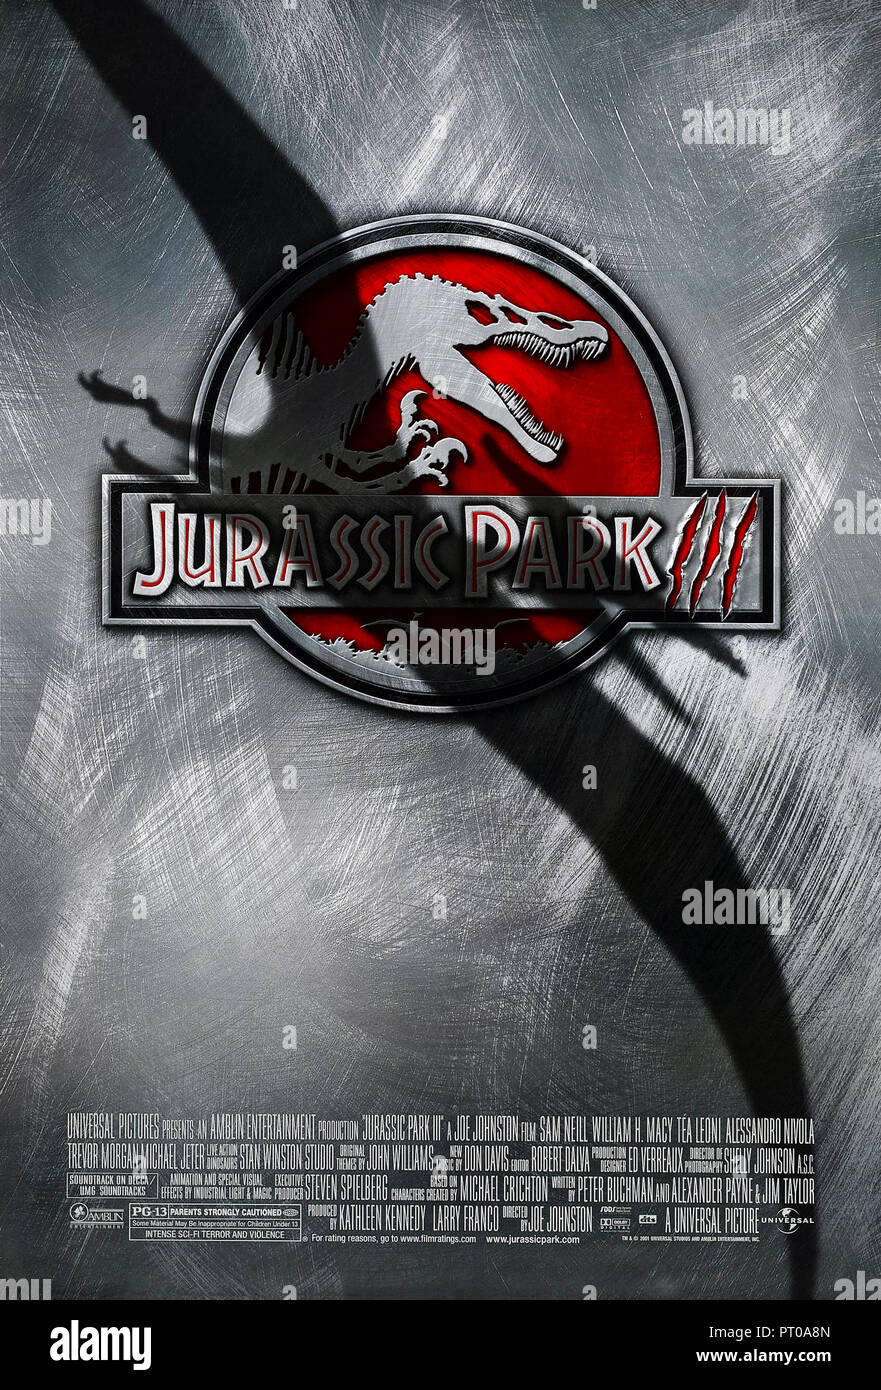 Jurassic Park III (2001) directed by Joe Johnston and starring Sam Neill, William H. Macy, Téa Leoni and Laura Dern. A wealthy couple persude Dr. Alan Grant to conduct an aerial tour of Isla Sorna but in reality need help to find their son. - Stock Image